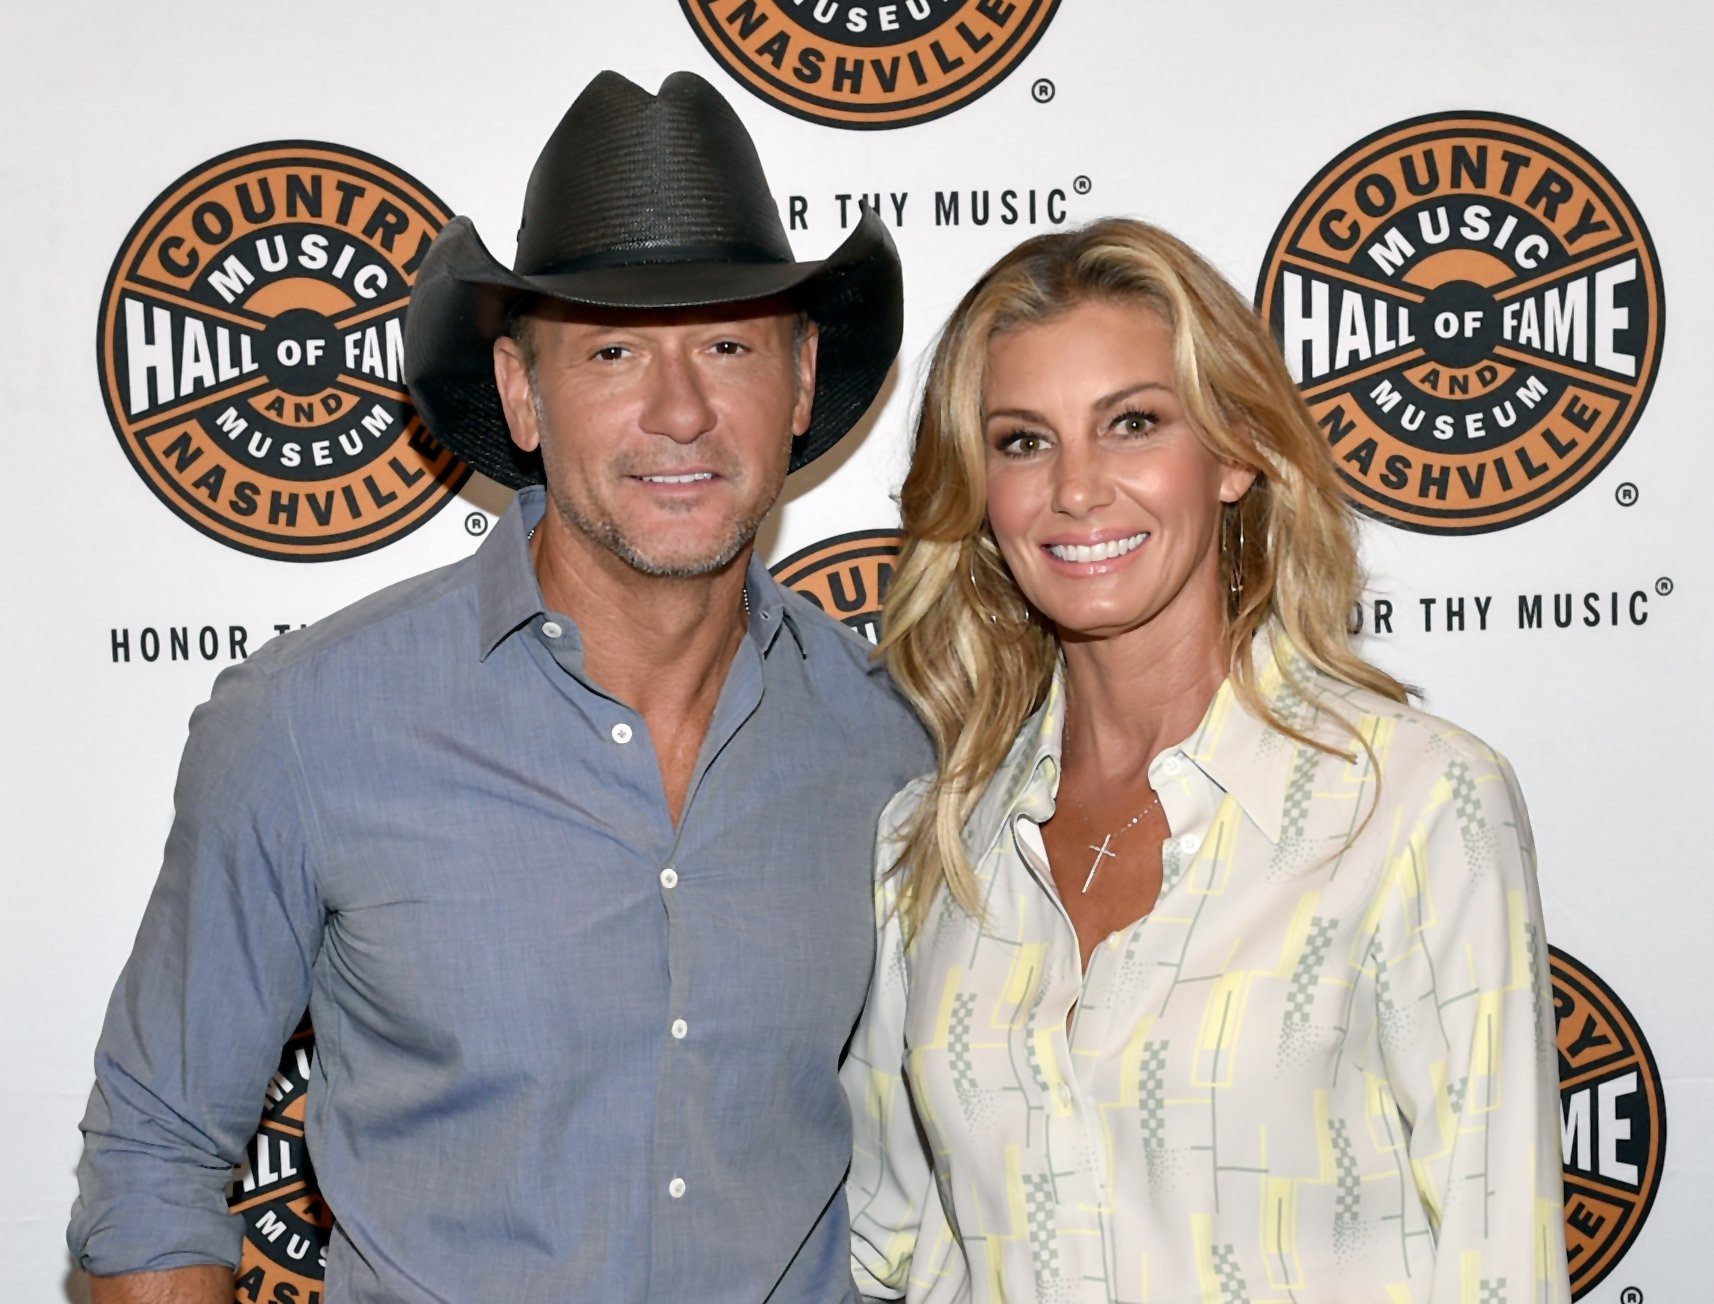 Image Credits: Getty Images / John Shearer | Tim McGraw (L) and Faith Hill (R) attend the All Access program at The Country Music Hall Of Fame And Museum's CMA Theater on May 3, 2018 in Nashville, Tennessee.